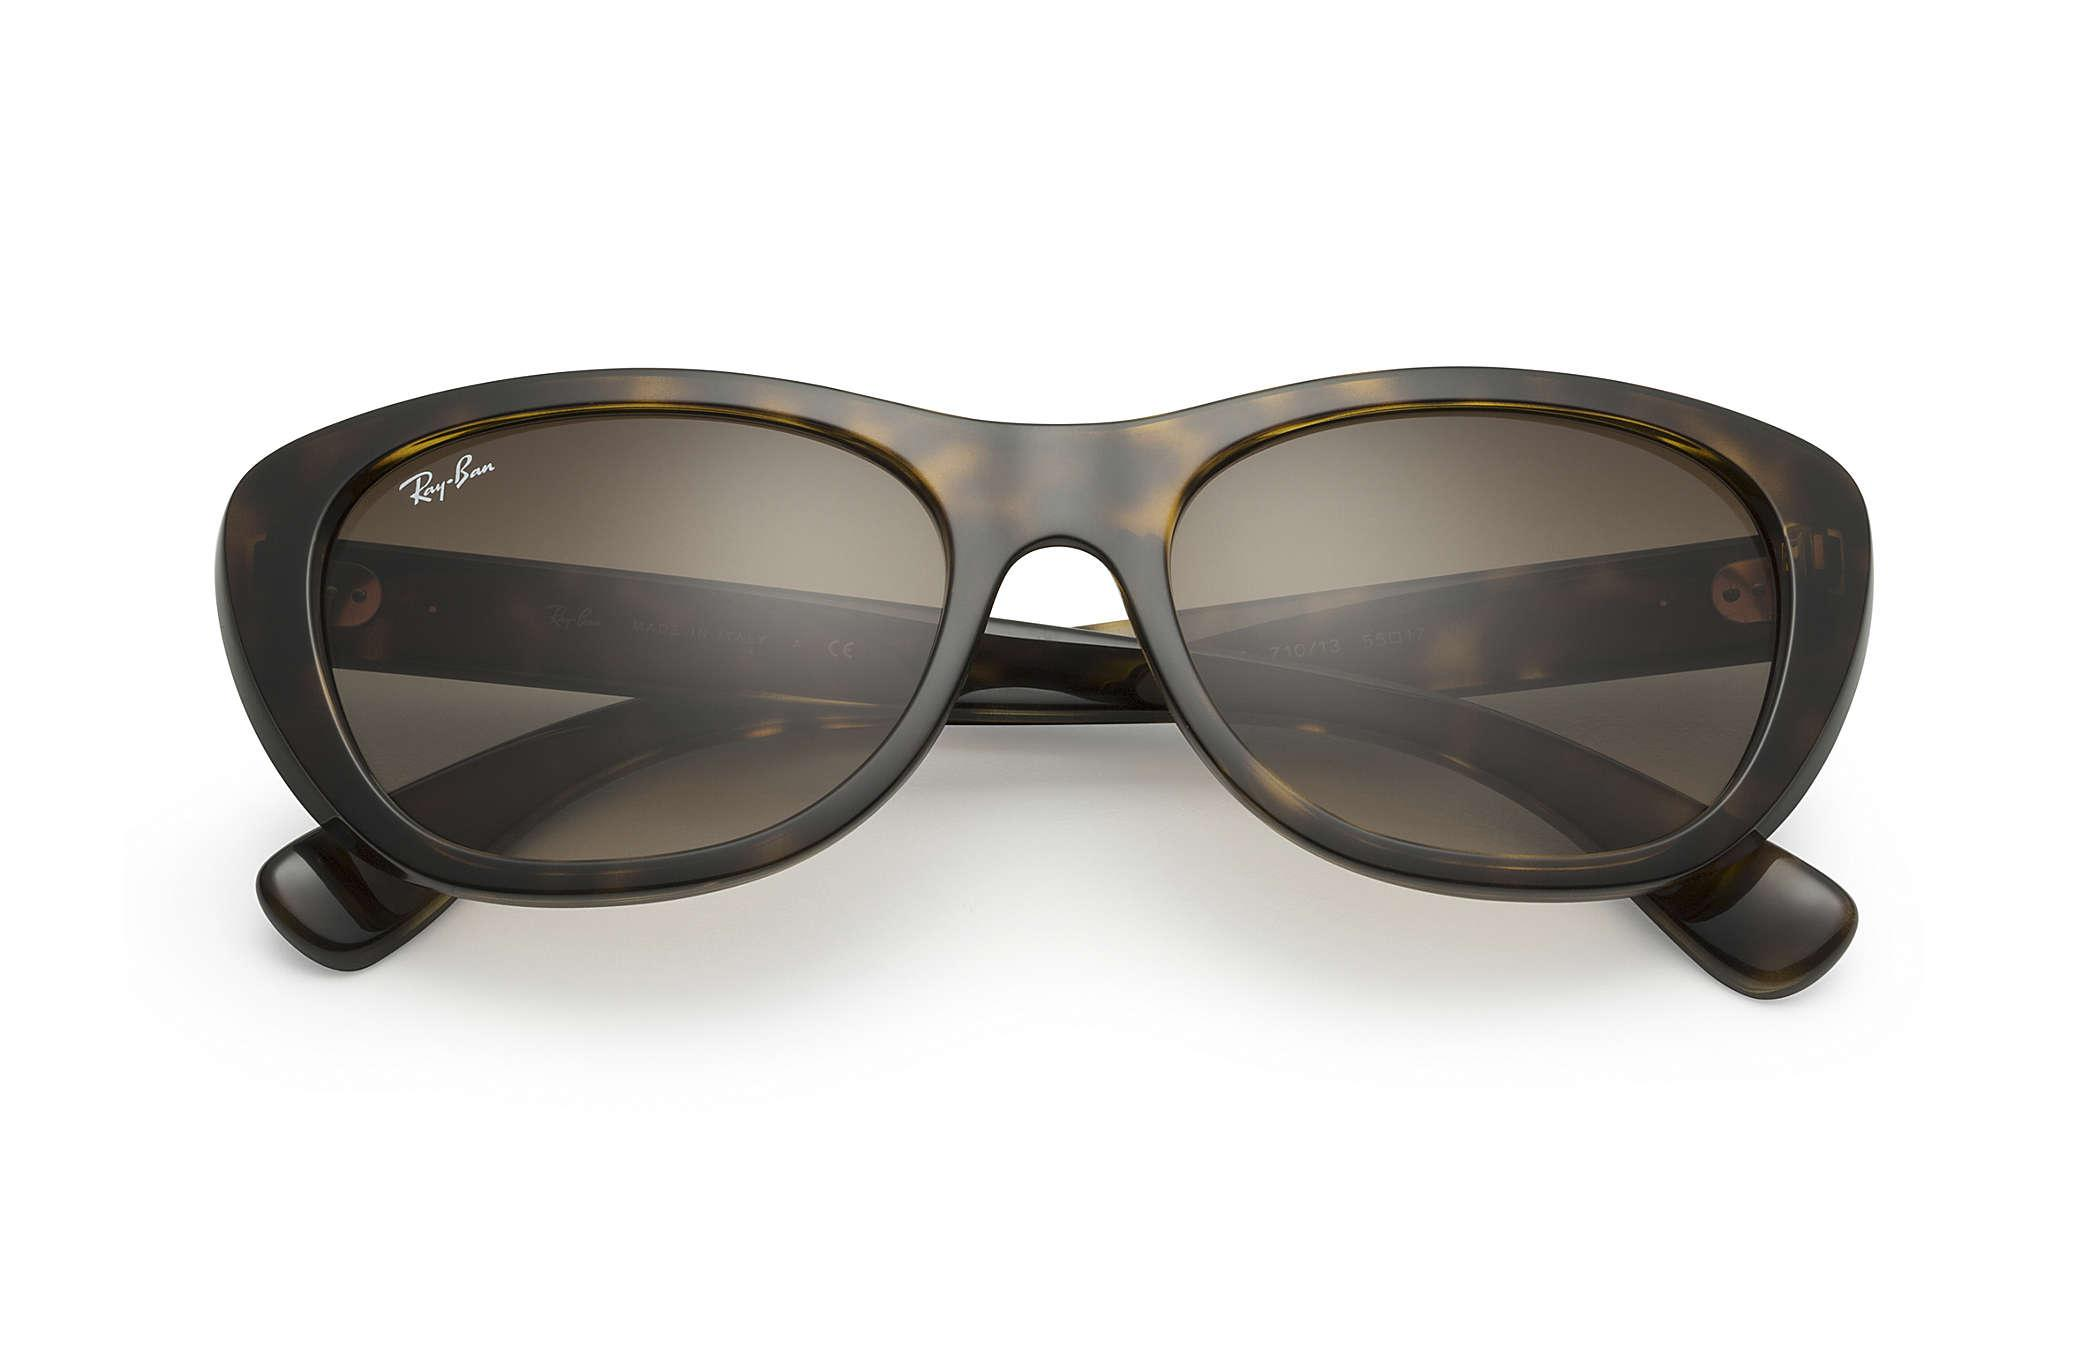 deaee1bd6c Ray-Ban - Brown Rb4227 Tortoise - Lyst. View fullscreen